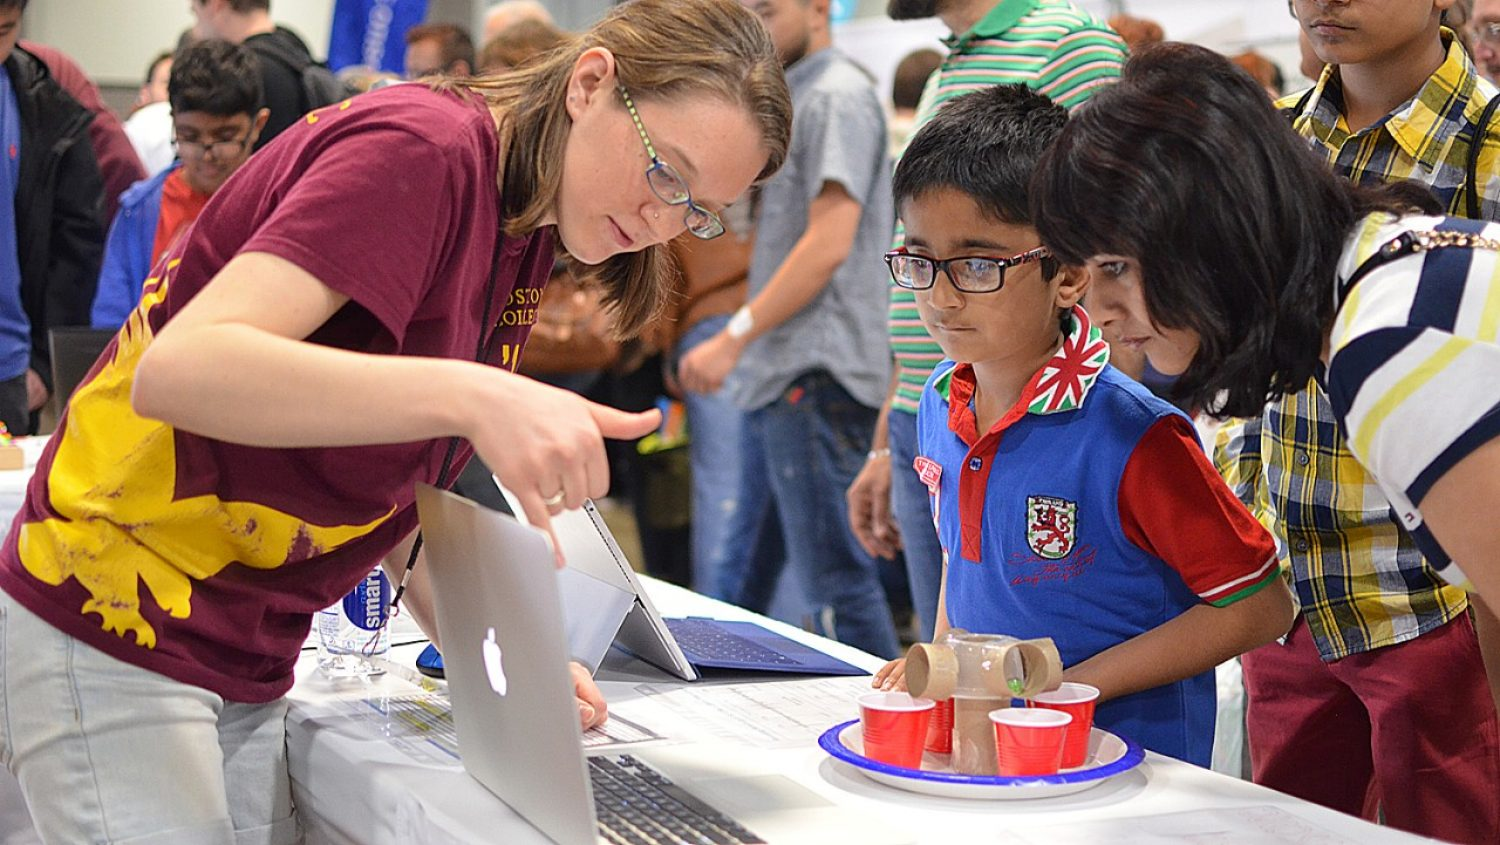 Students at USA Science & Engineering Festival